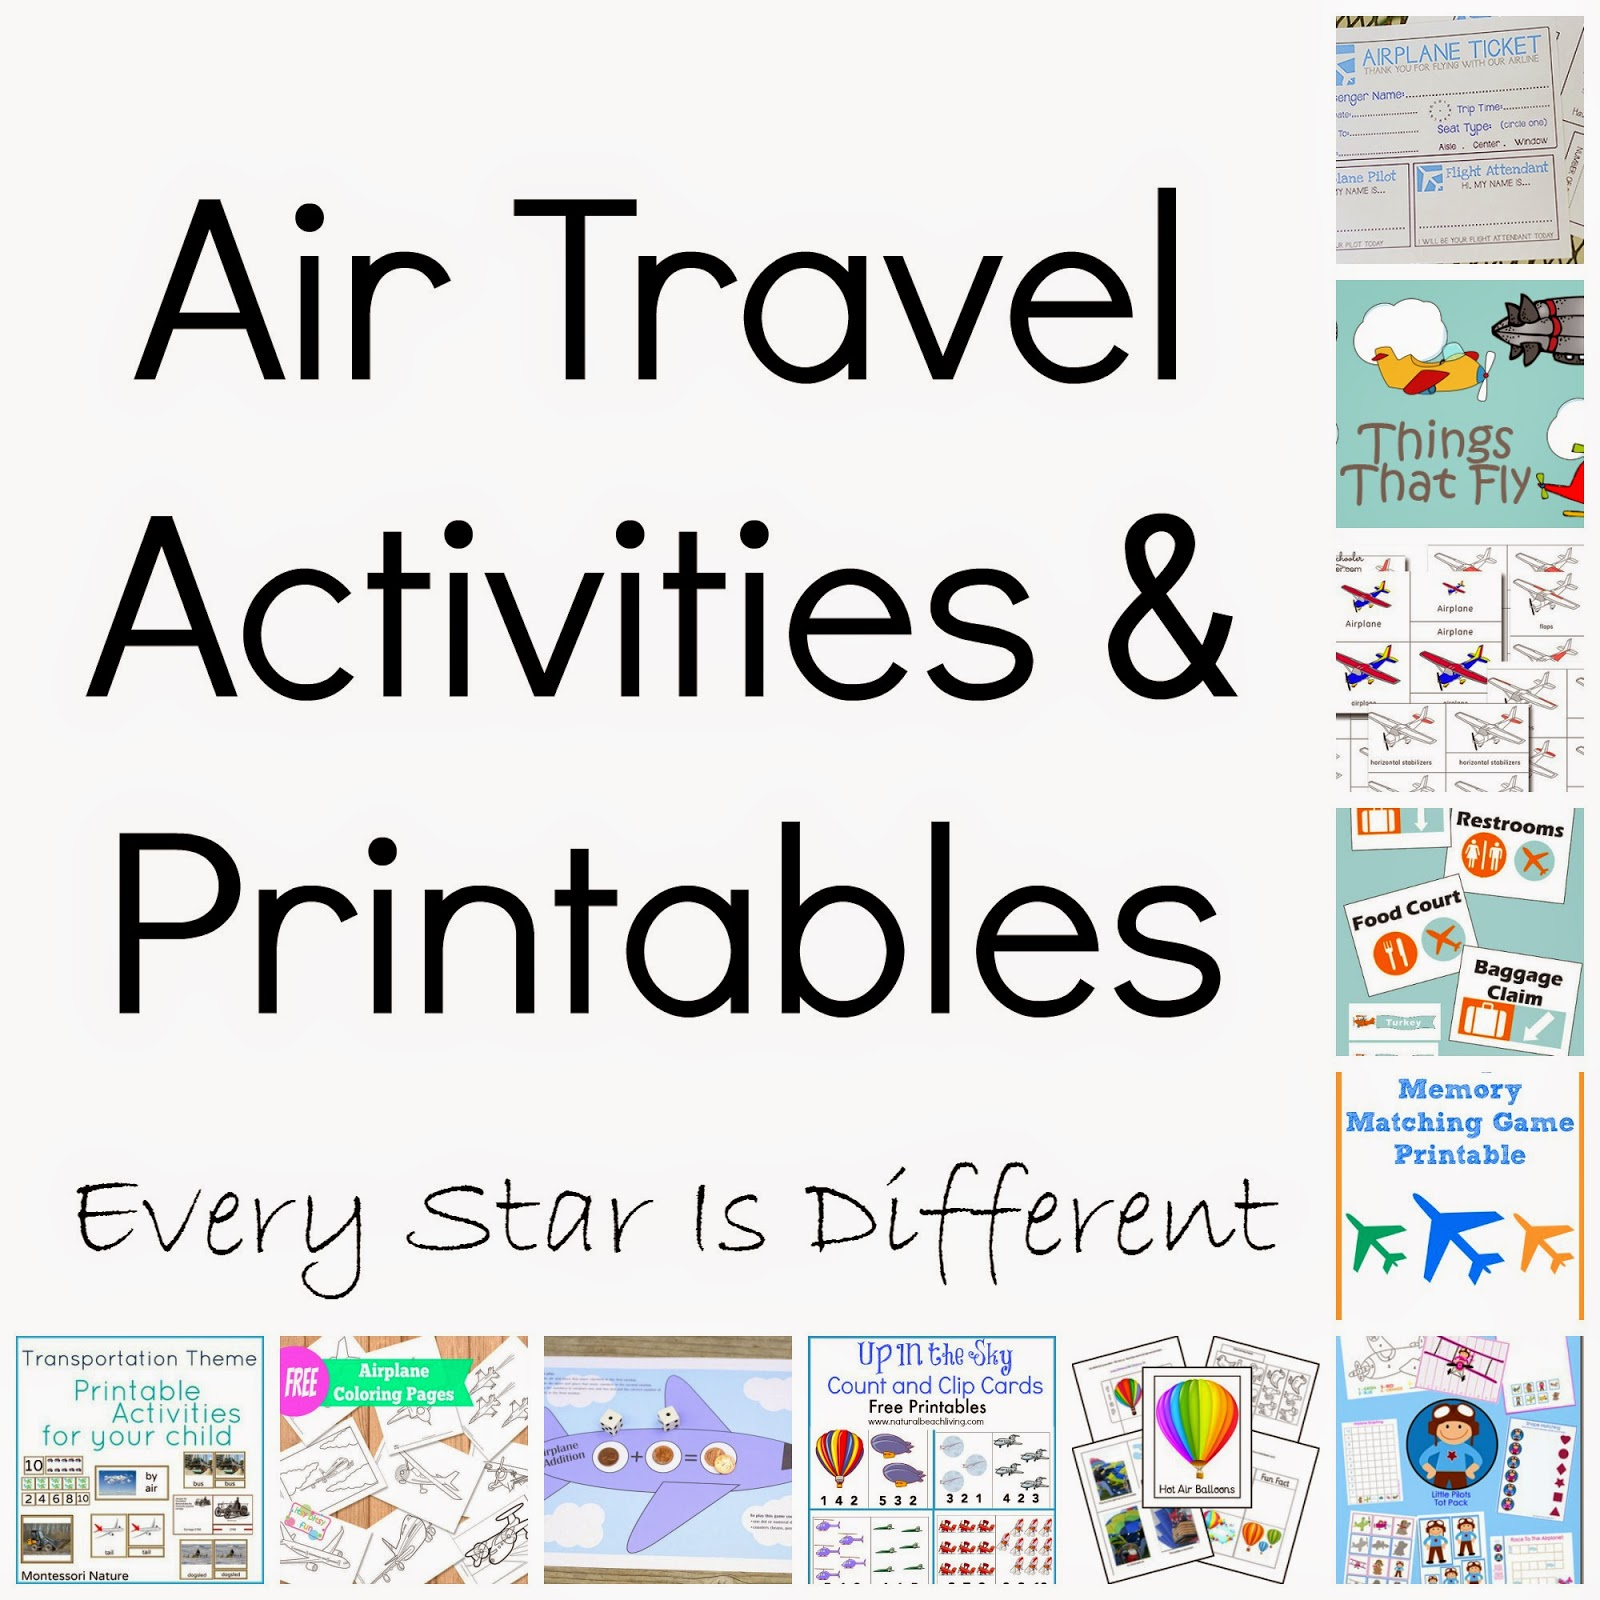 Air Travel To Walt Disney World With Special Needs